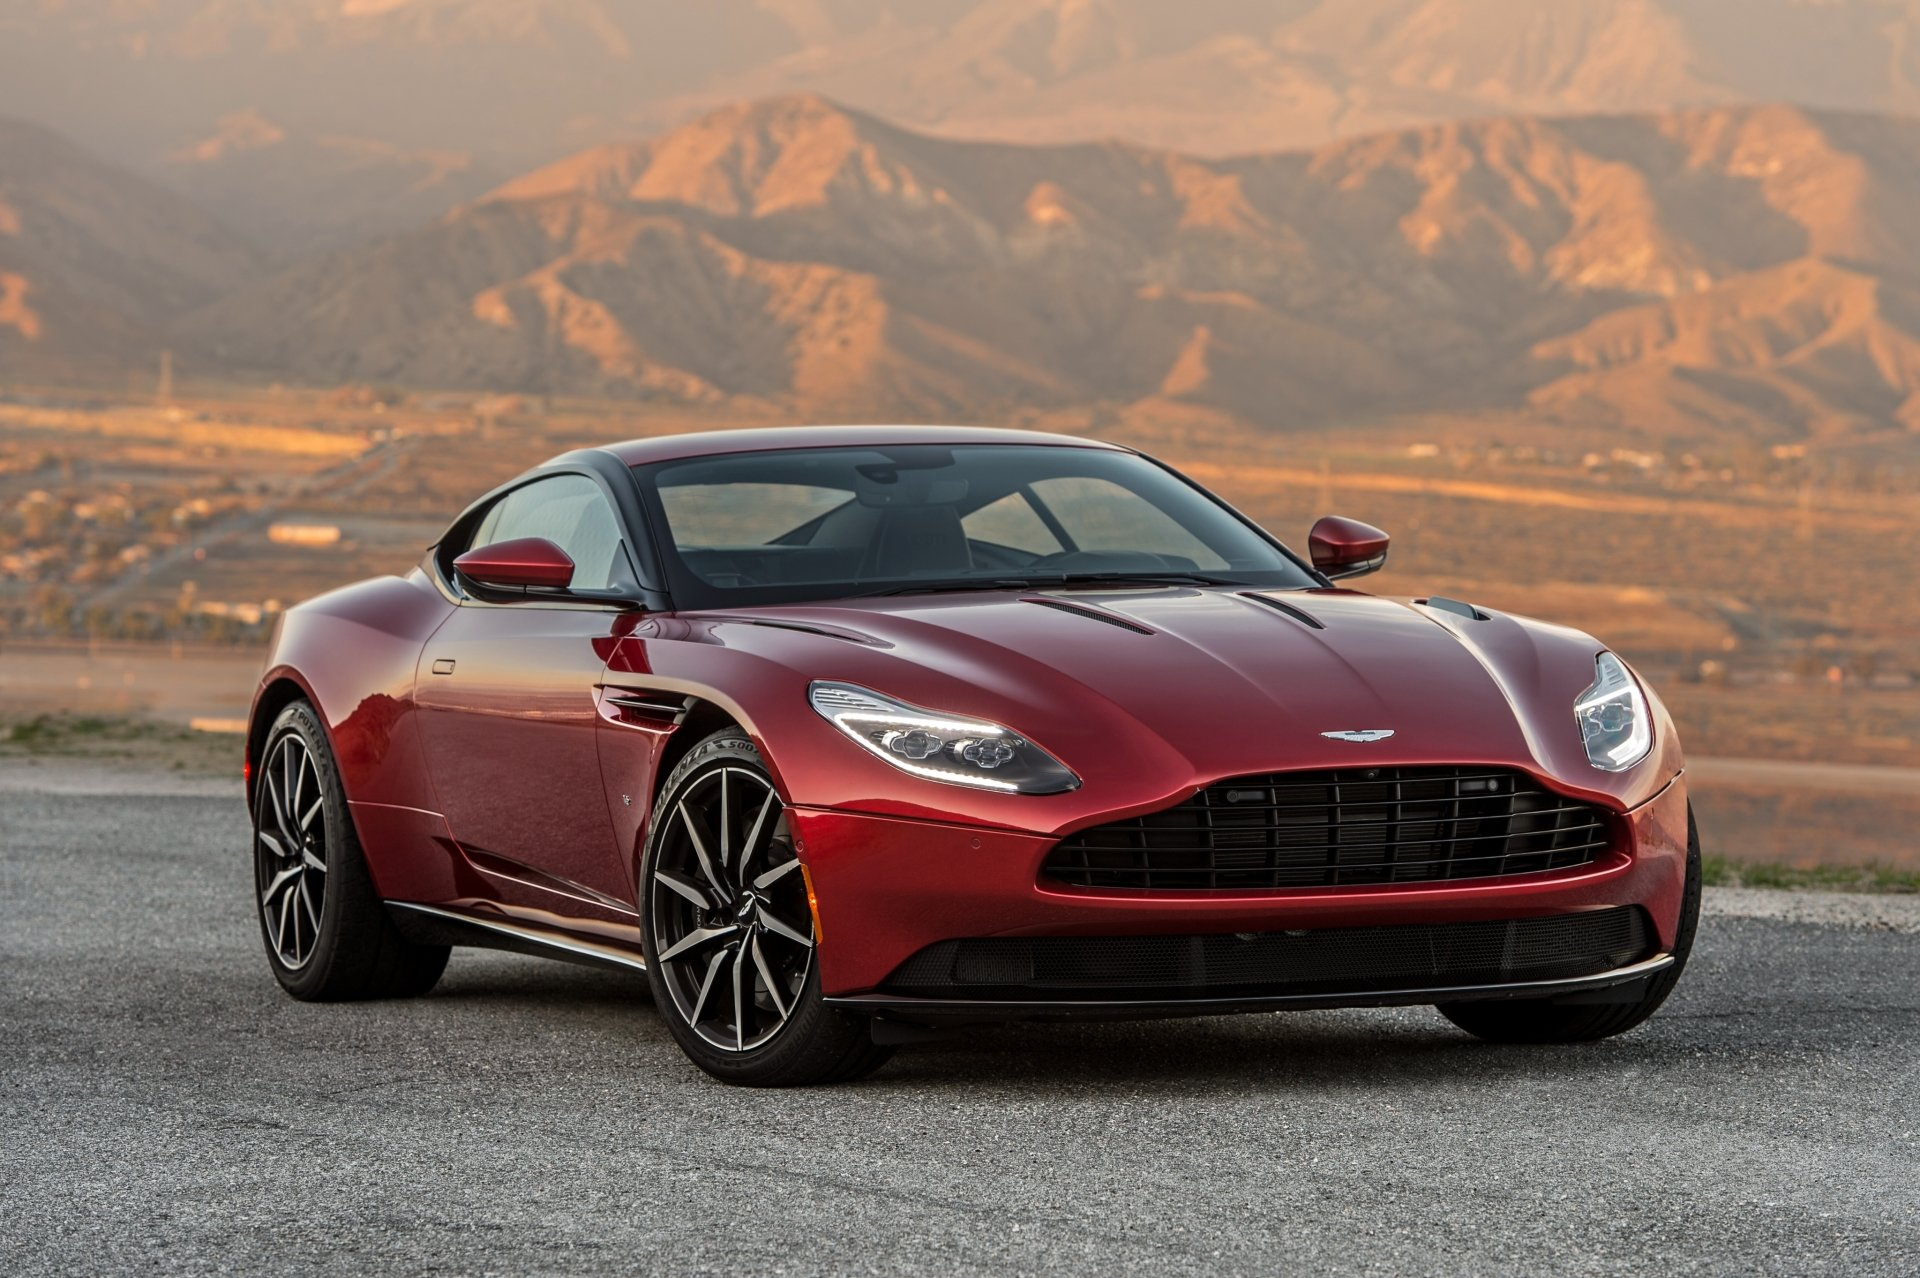 Vehicles - Aston Martin DB11  Aston Martin Car Vehicle Red Car Grand Tourer Supercar Wallpaper